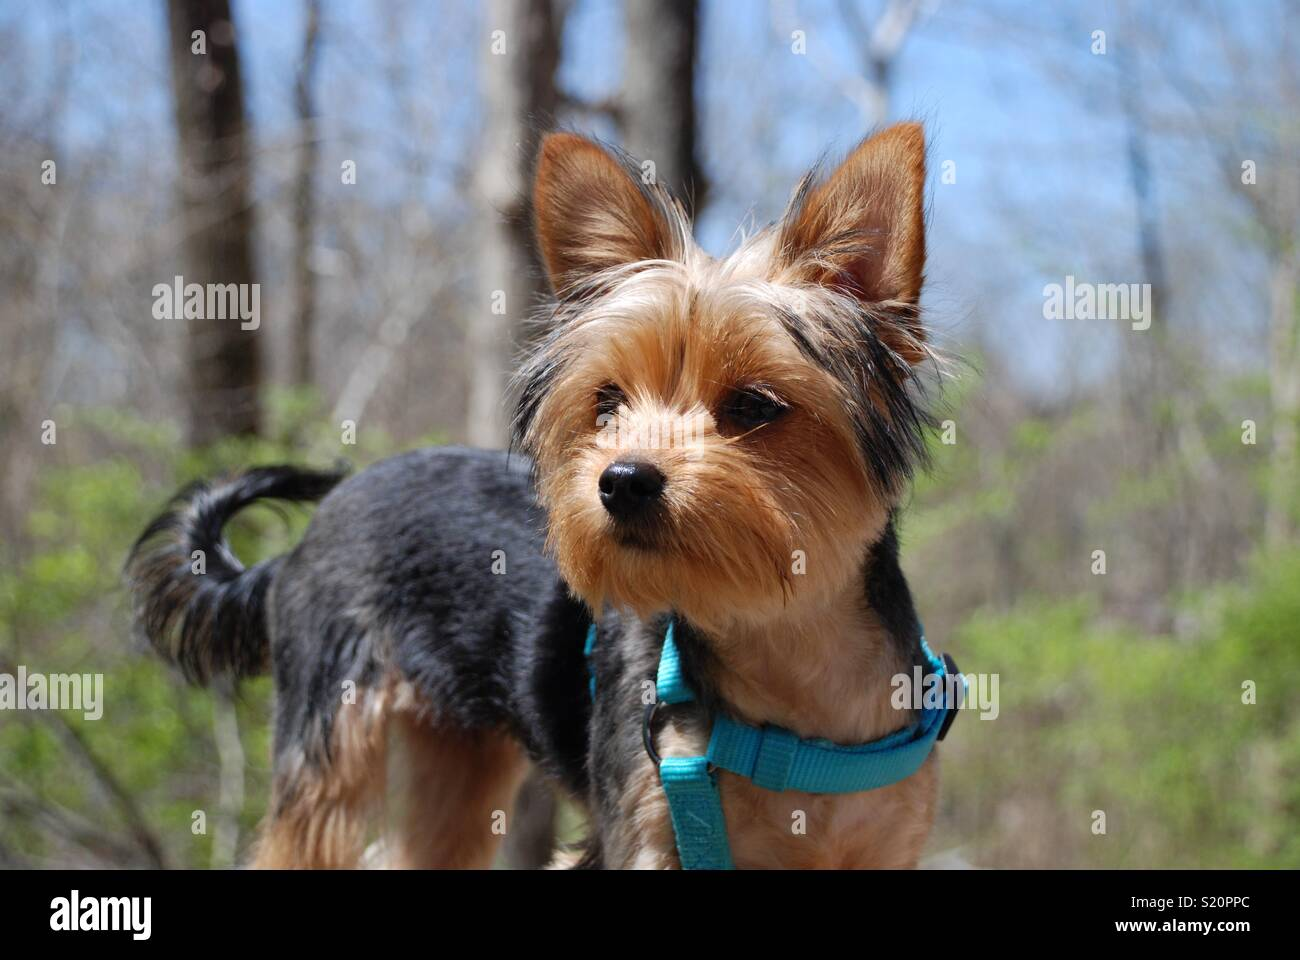 Yorkie Portrait High Resolution Stock Photography And Images Alamy